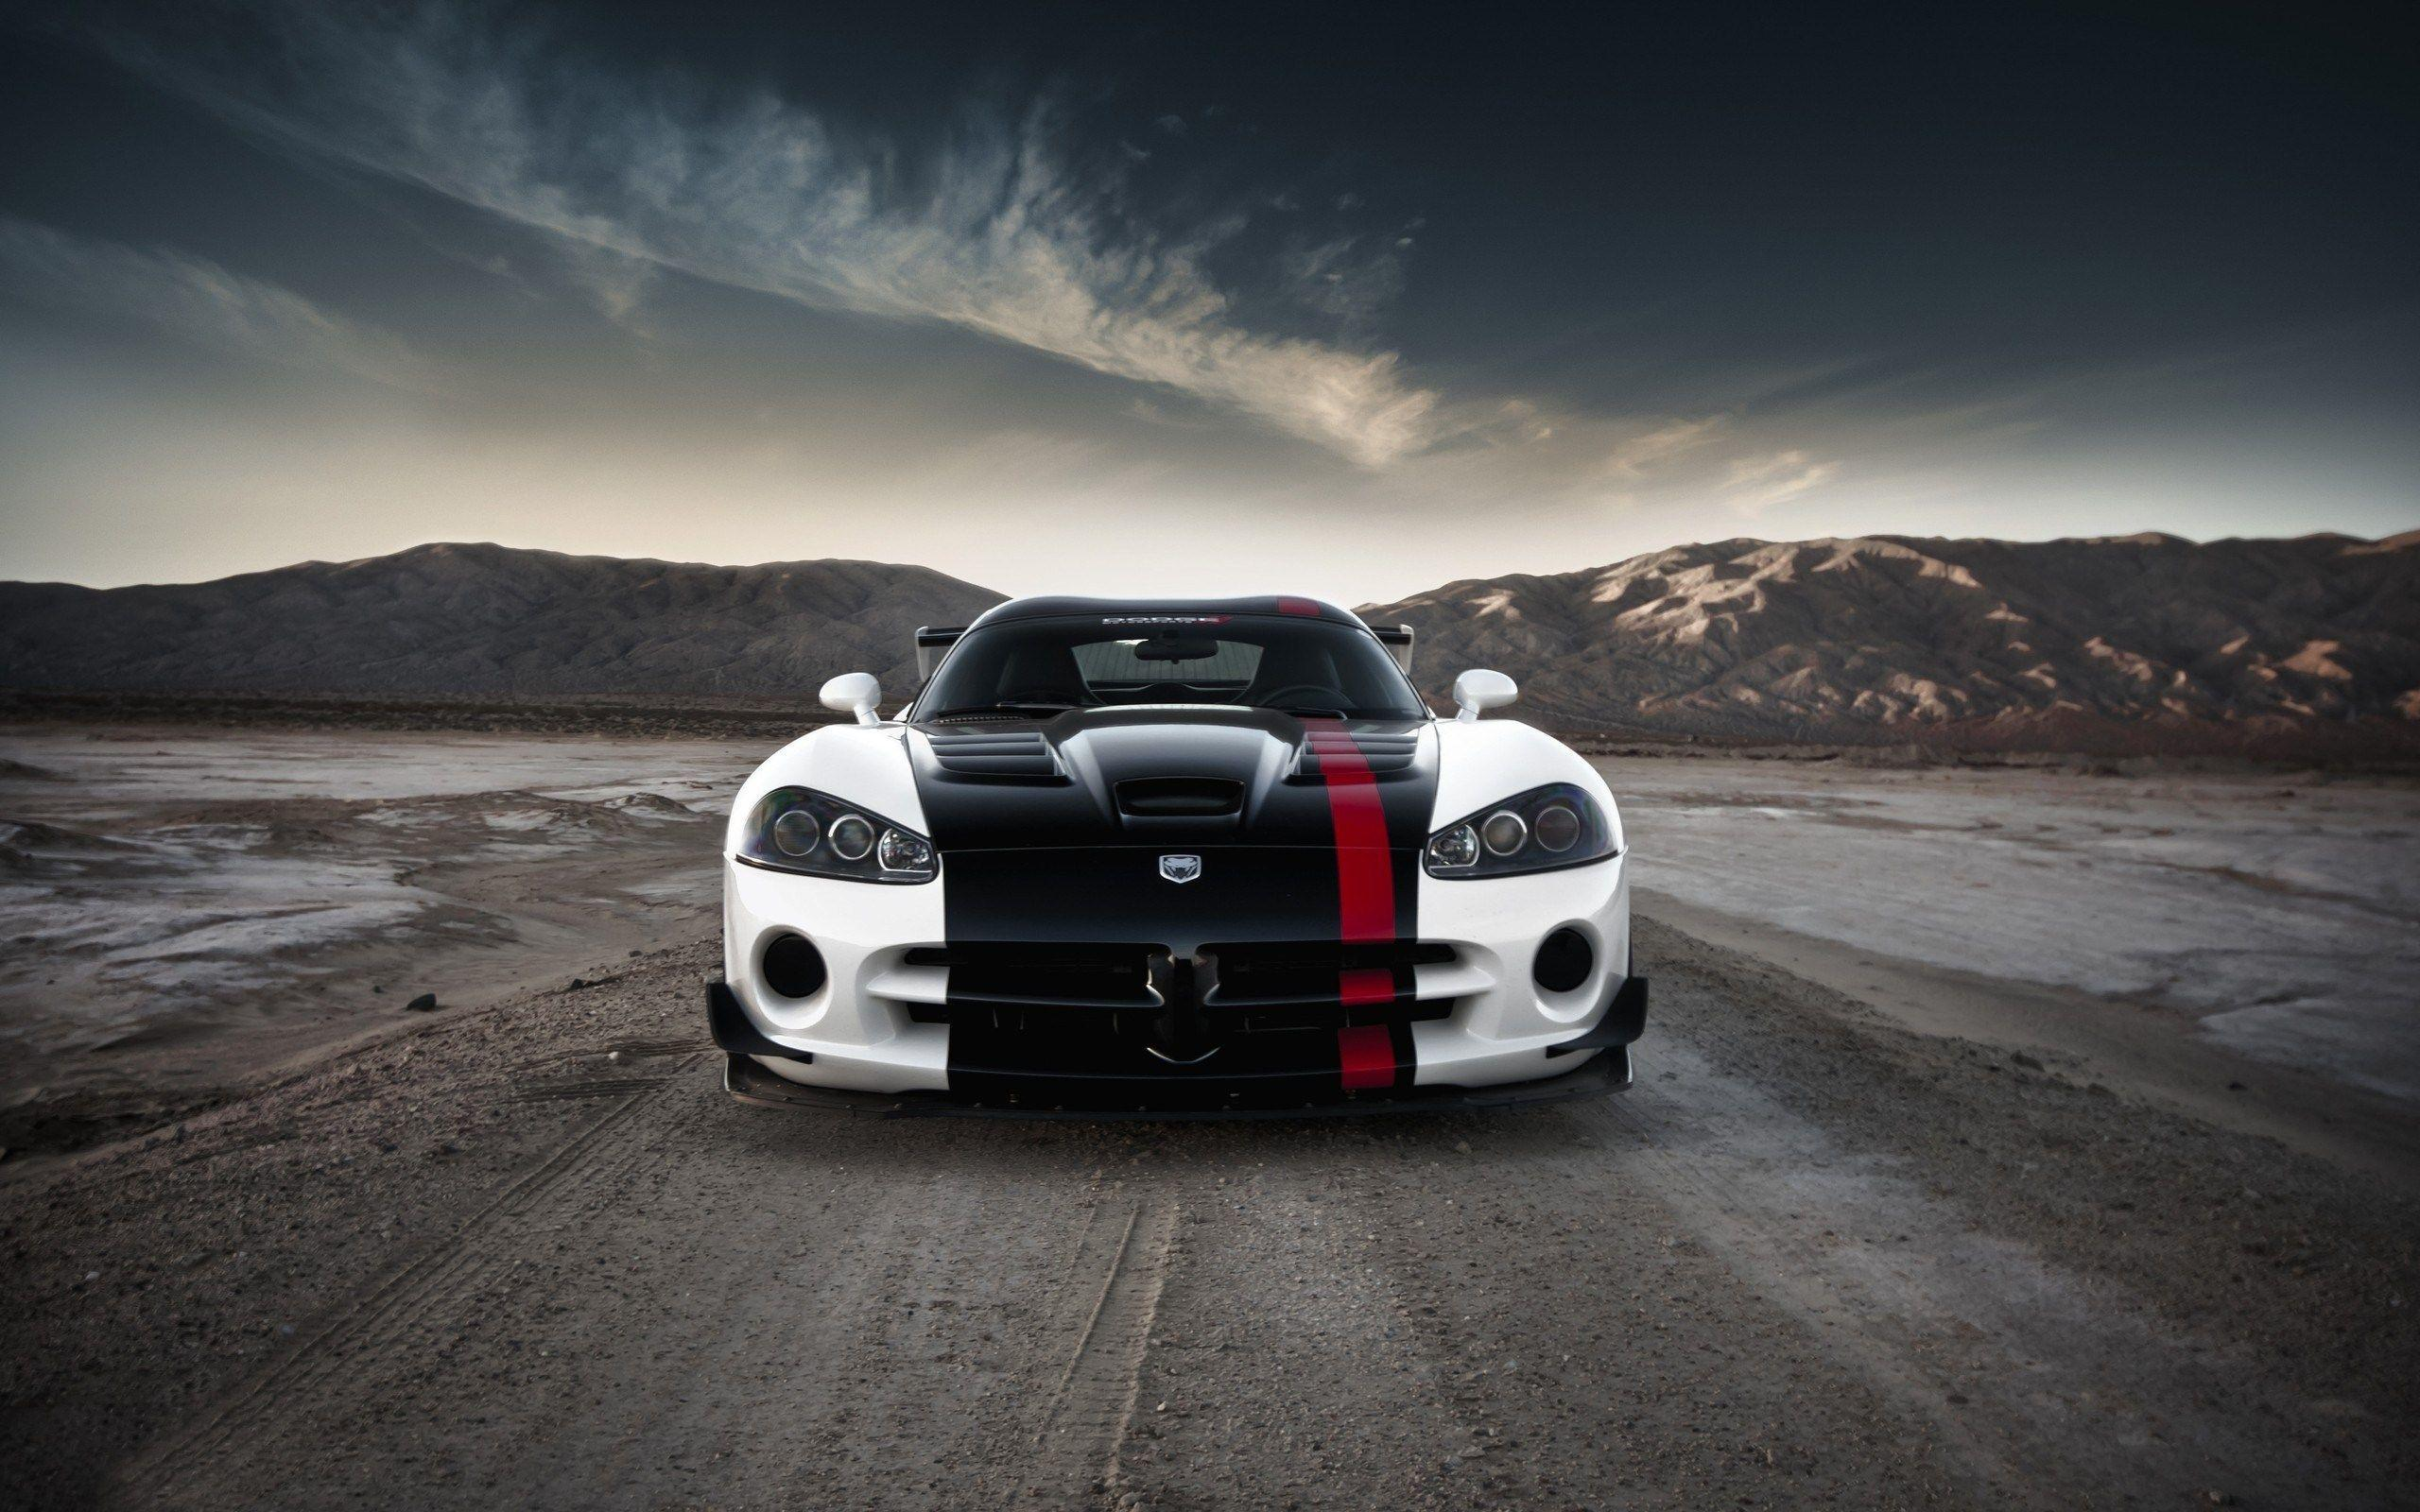 cool car backgrounds 8804393